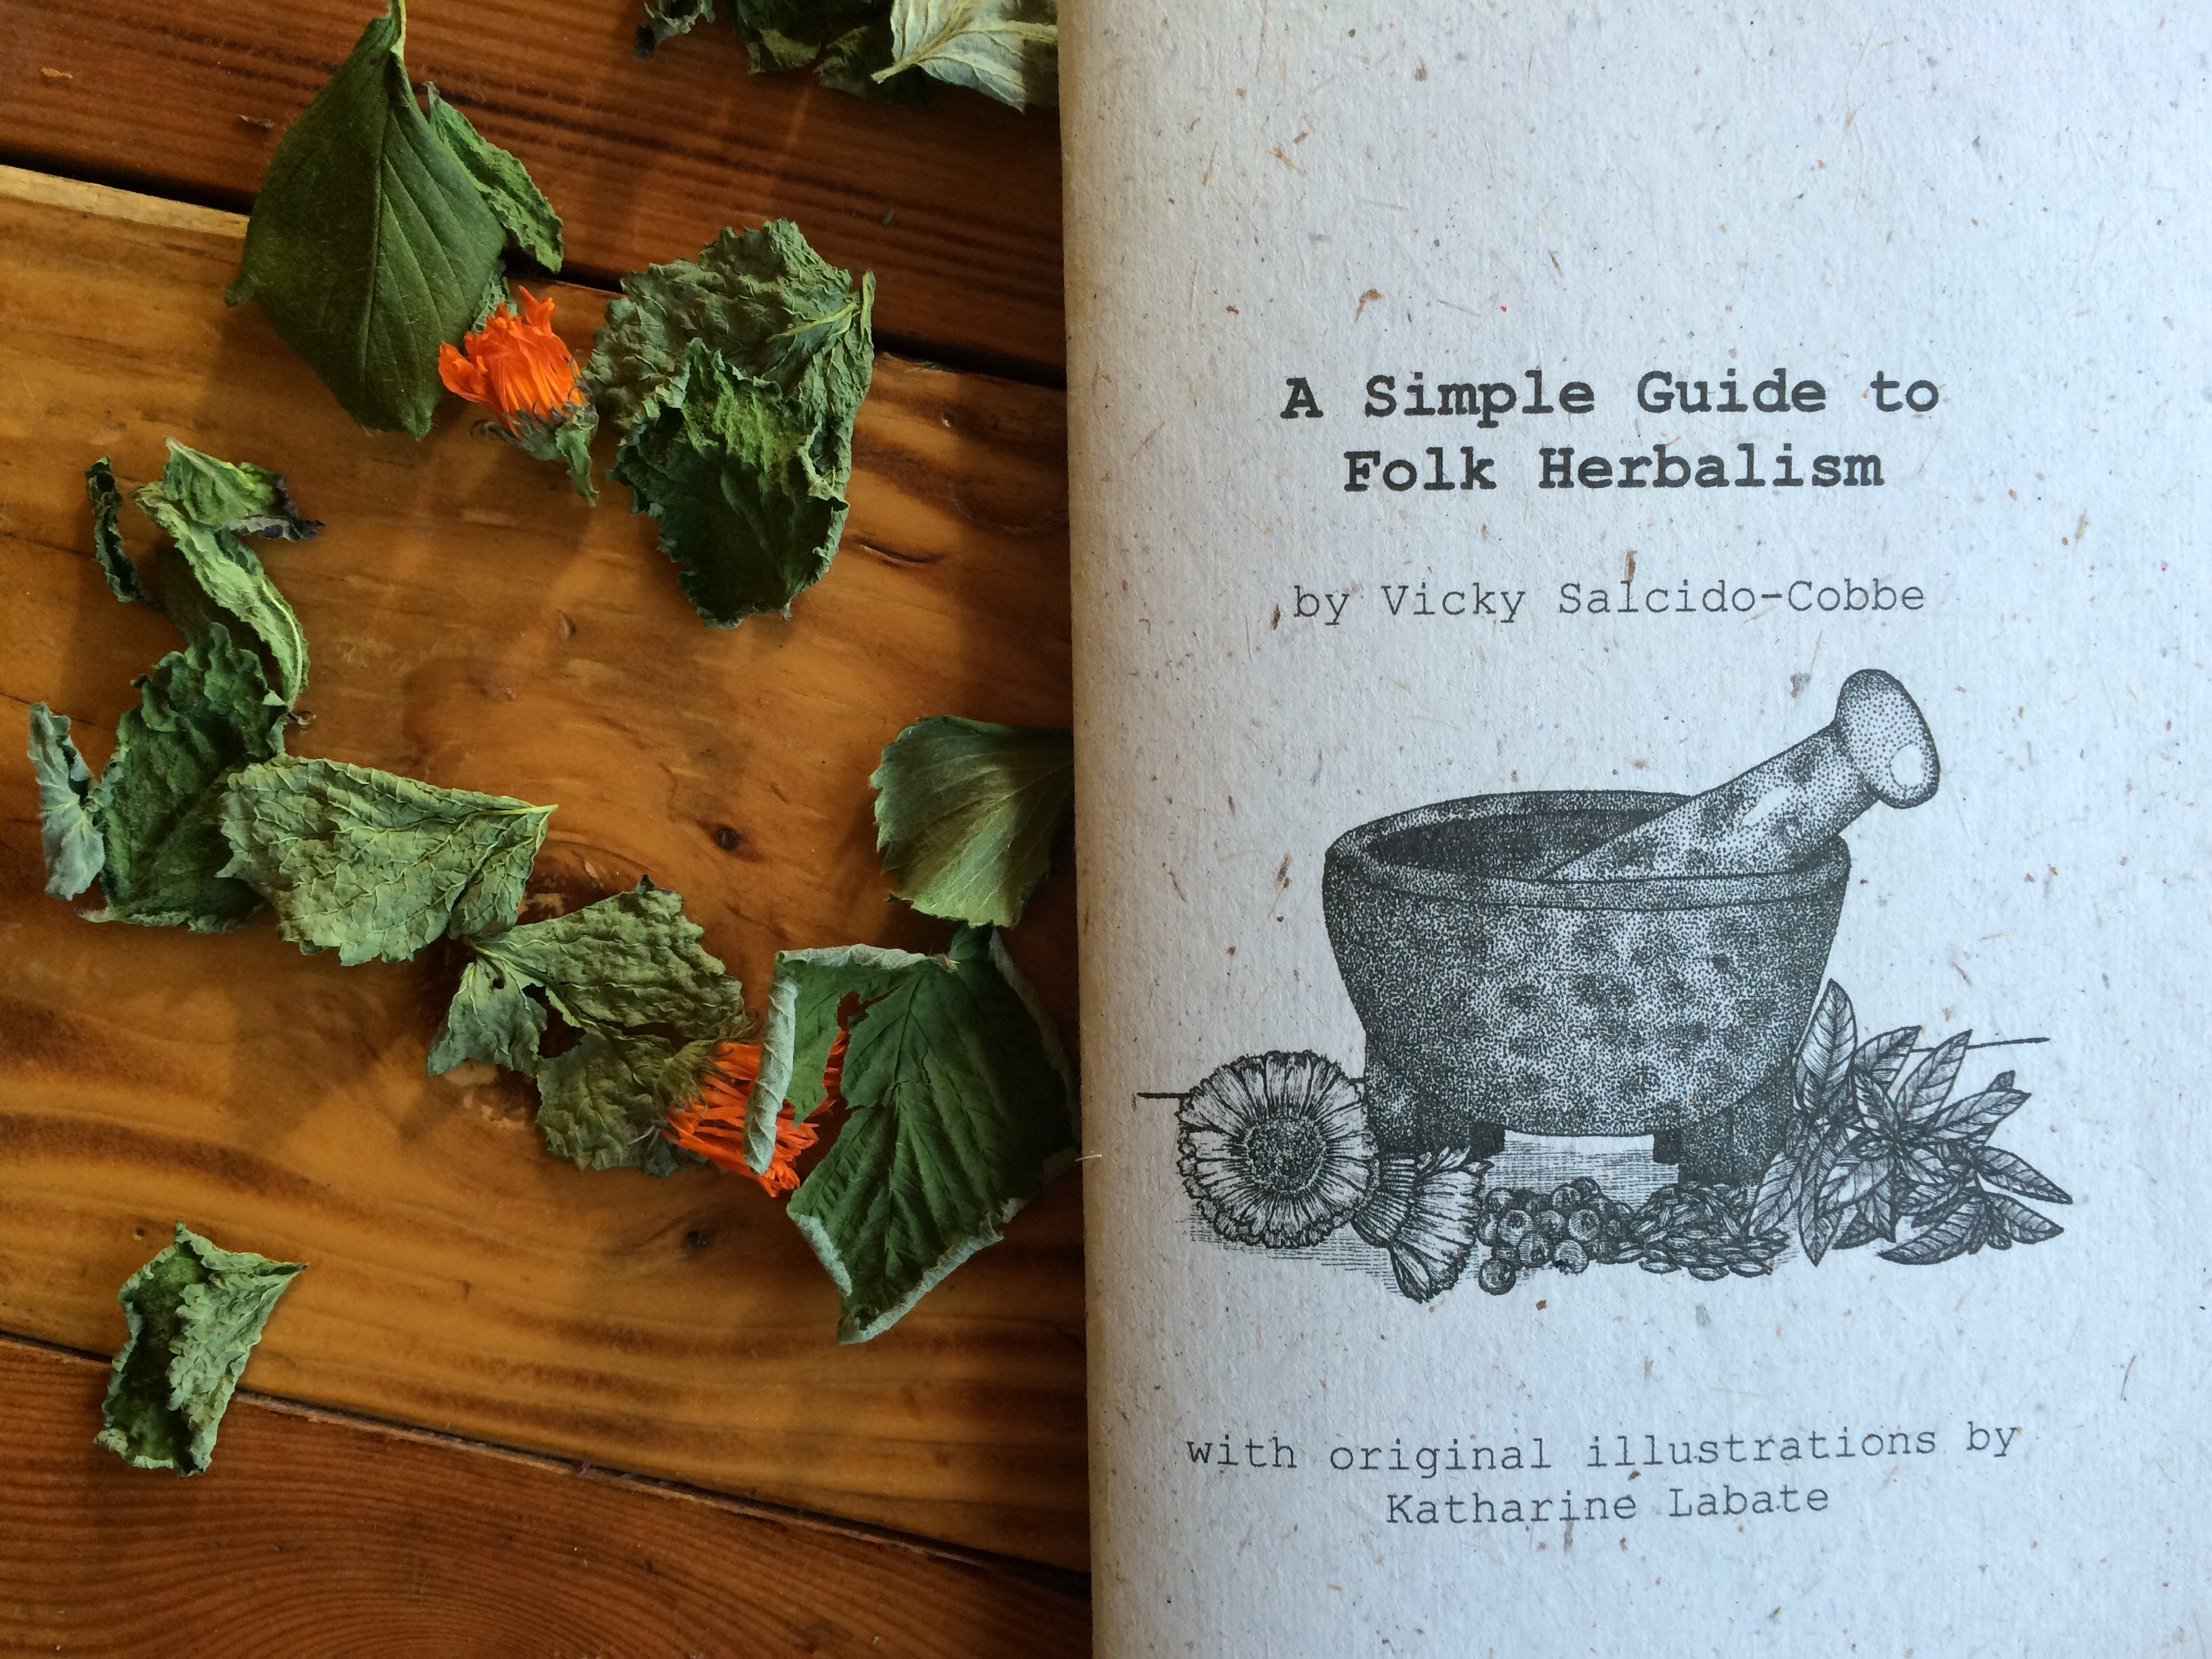 A Simple Guide to Folk Herbalism, 2nd Edition Booklet